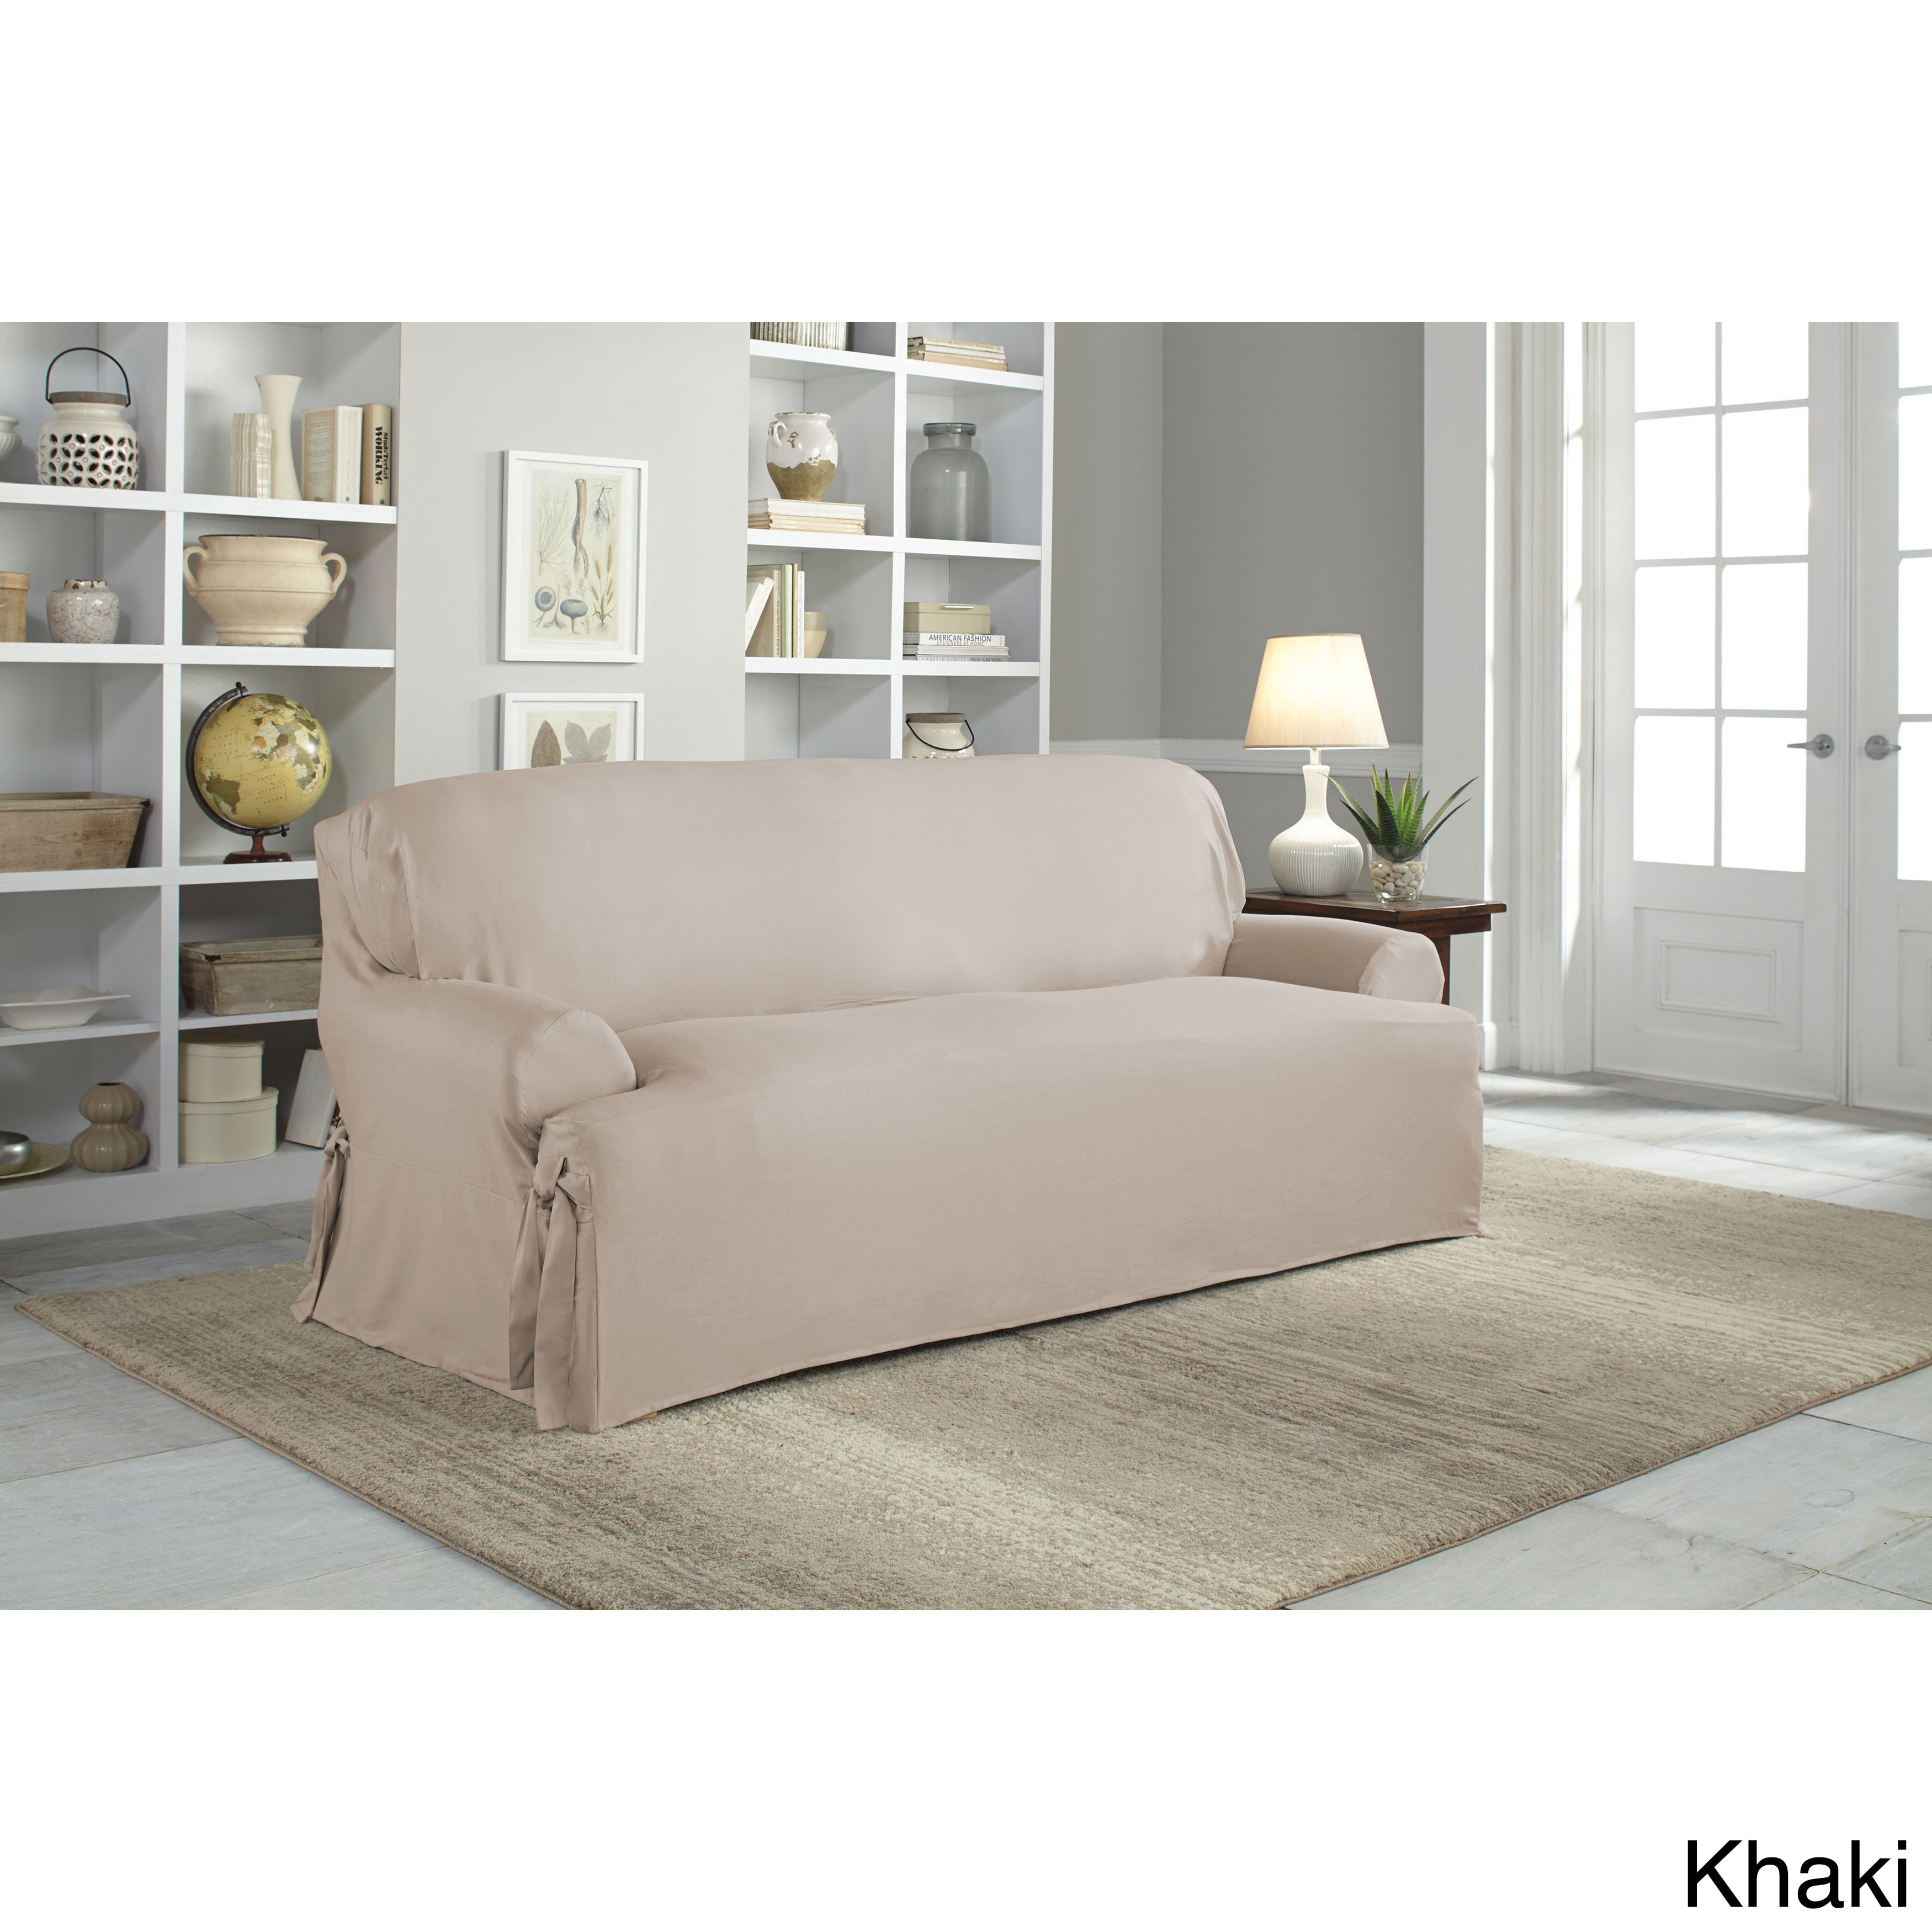 Slipcover T Cushion Sofa Sure Fit Matele Damask T Cushion Sofa Slipcover Reviews Wayfair Thesofa